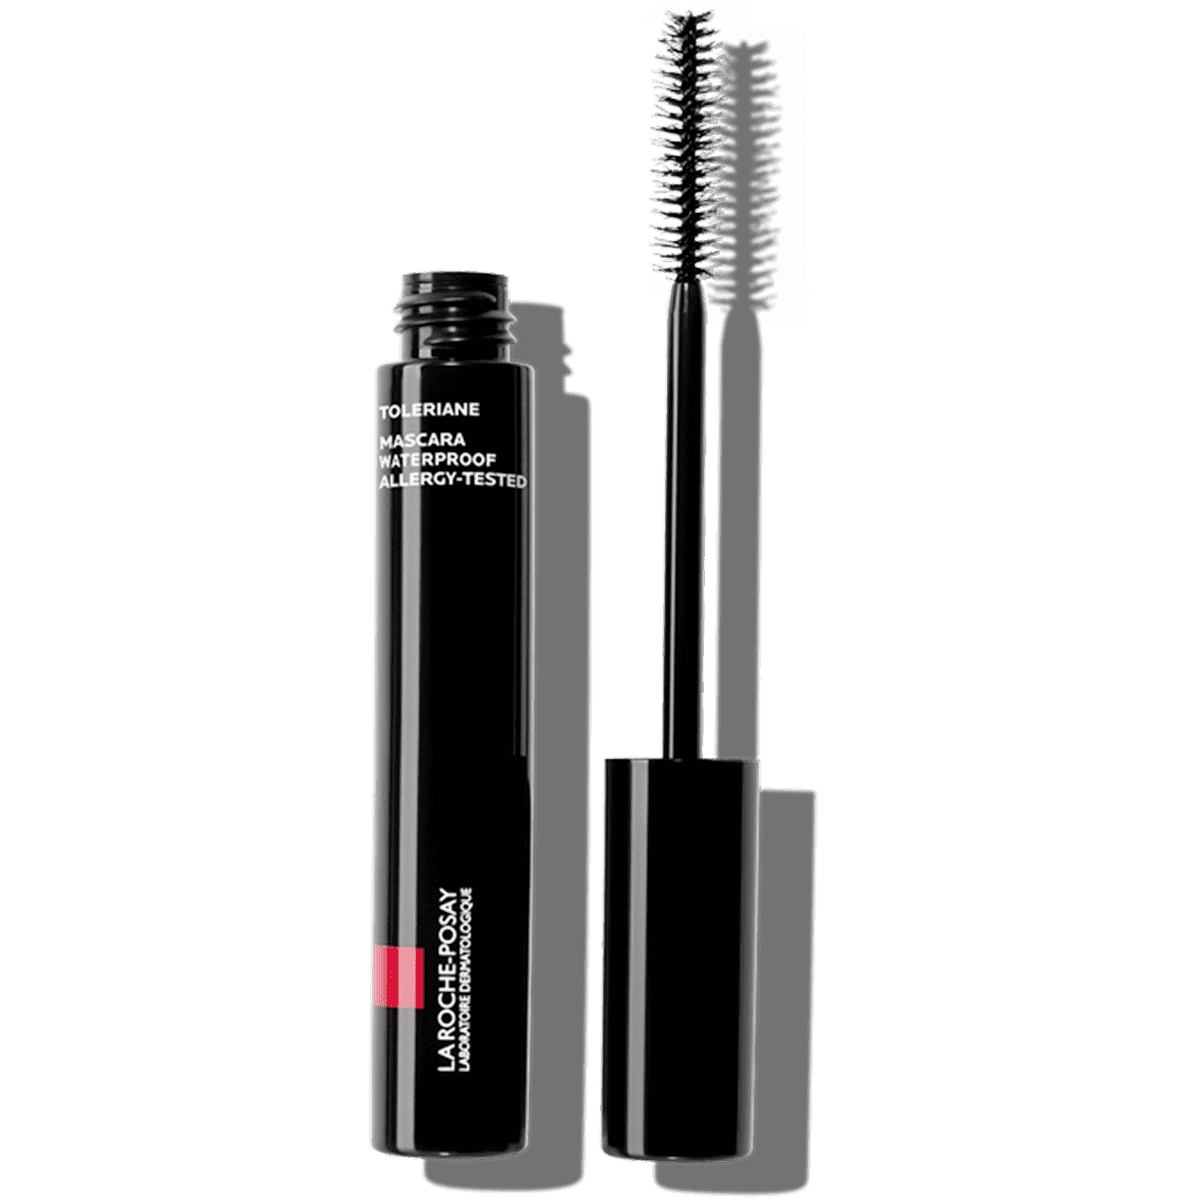 La Roche Posay Sensitive Toleriane Make up WATERPROOF_MASCARA_Black 33